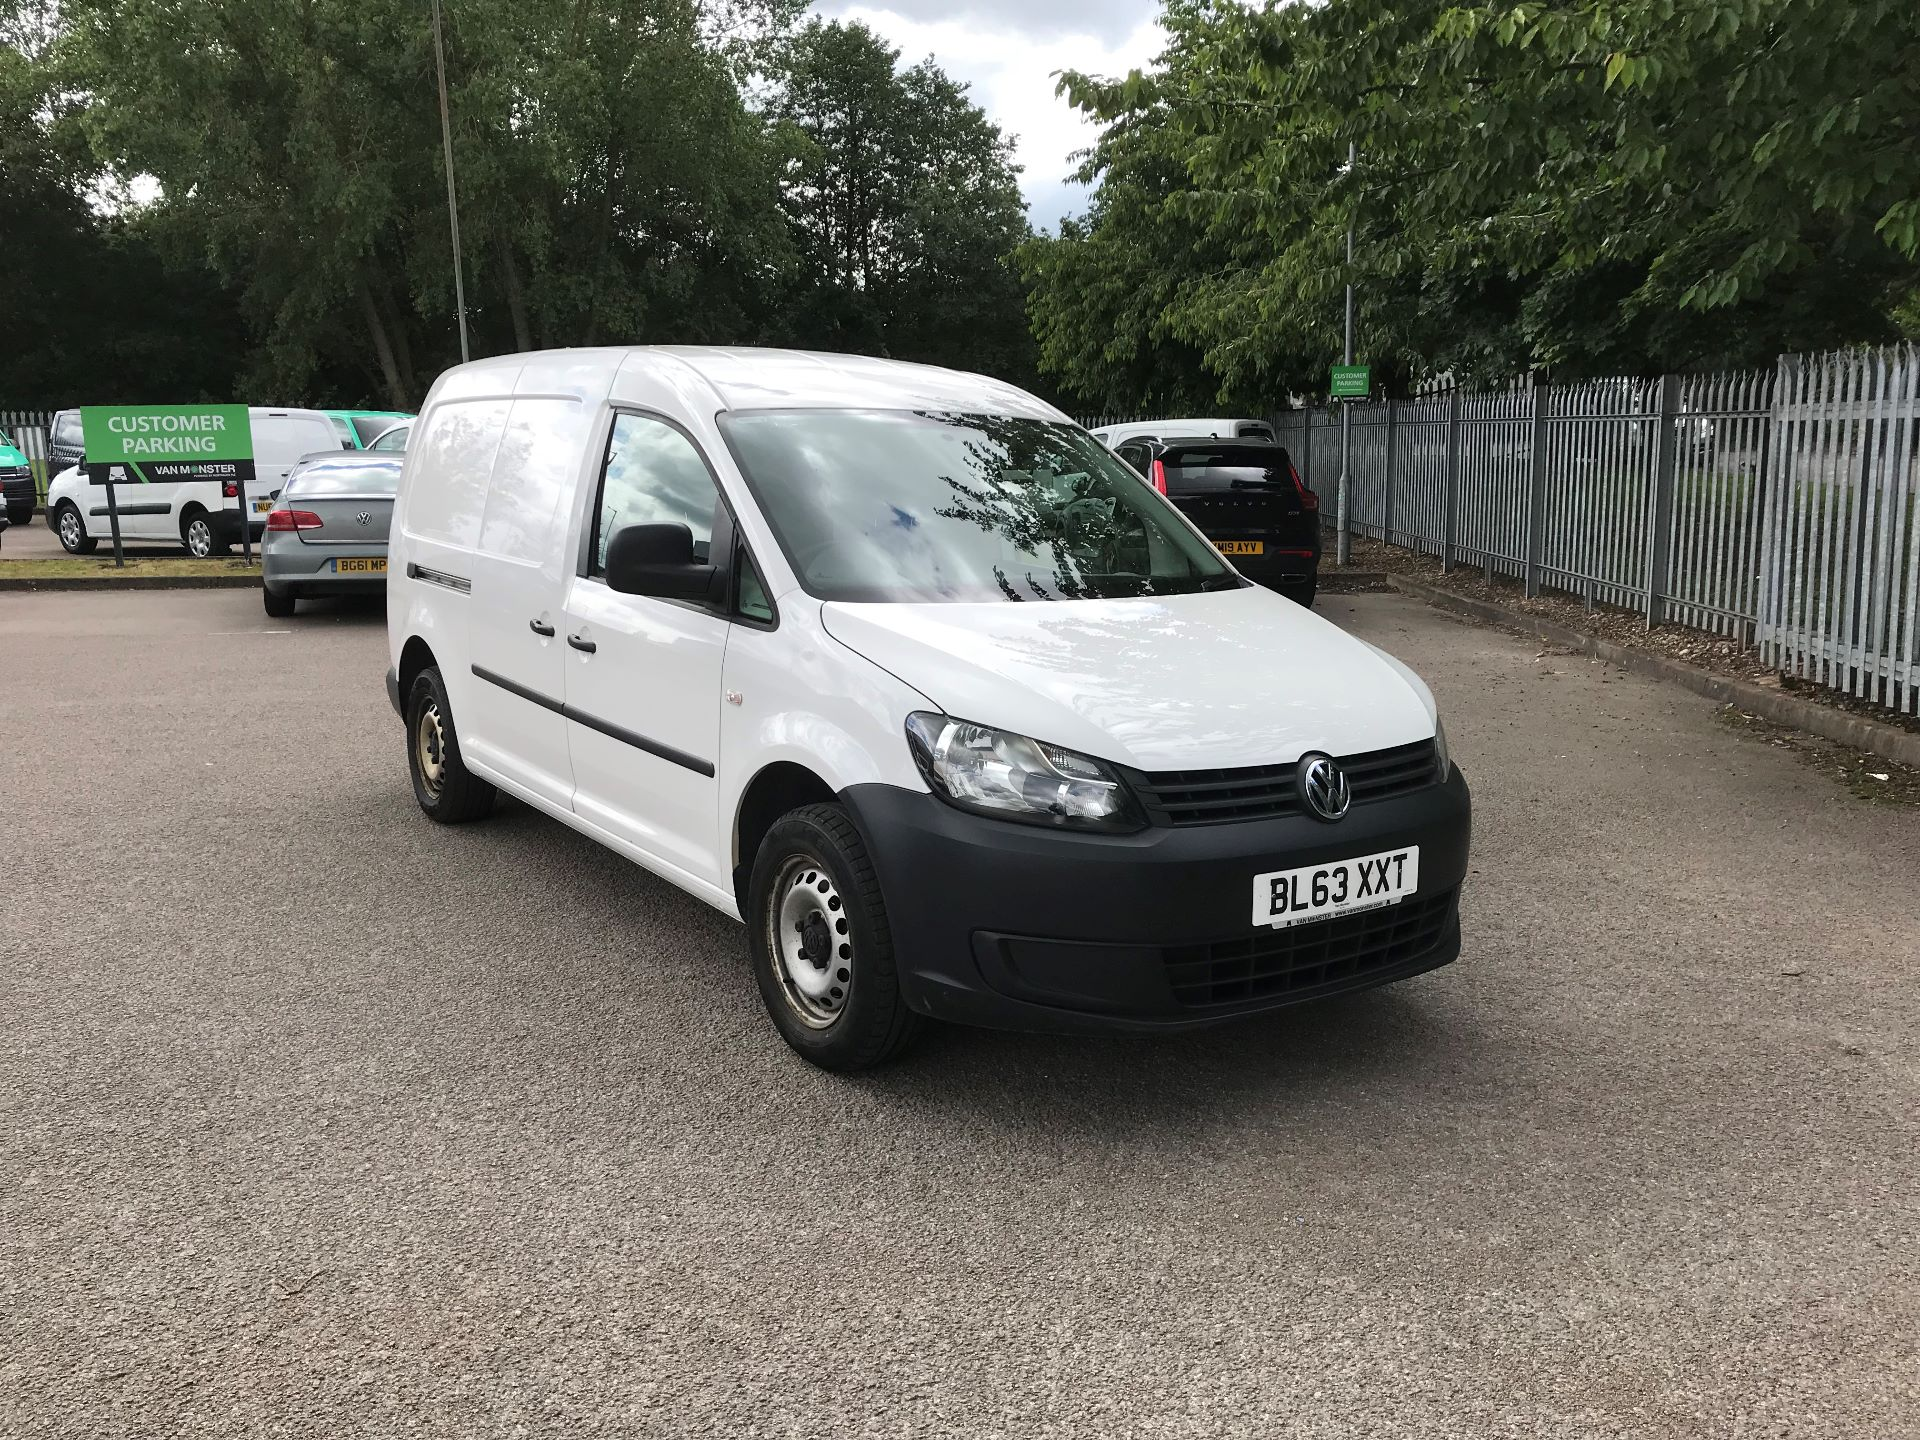 2014 Volkswagen Caddy Maxi 1.6 Tdi Bluemotion Tech 102Ps Startline Van (BL63XXT) Image 1